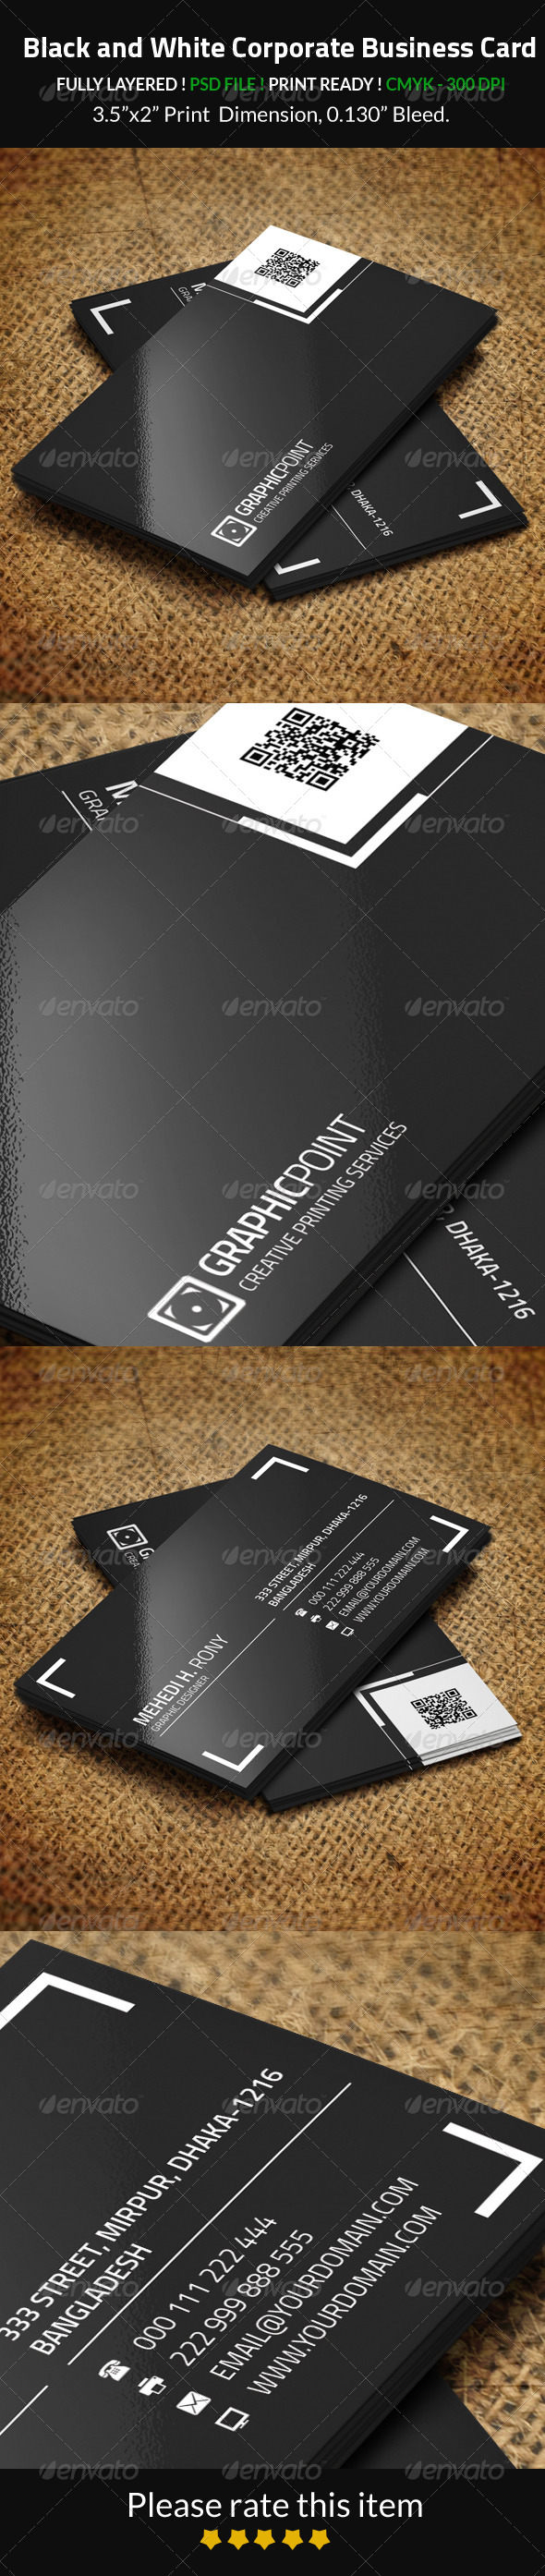 GraphicRiver Black and White Corporate Business Card 8245641